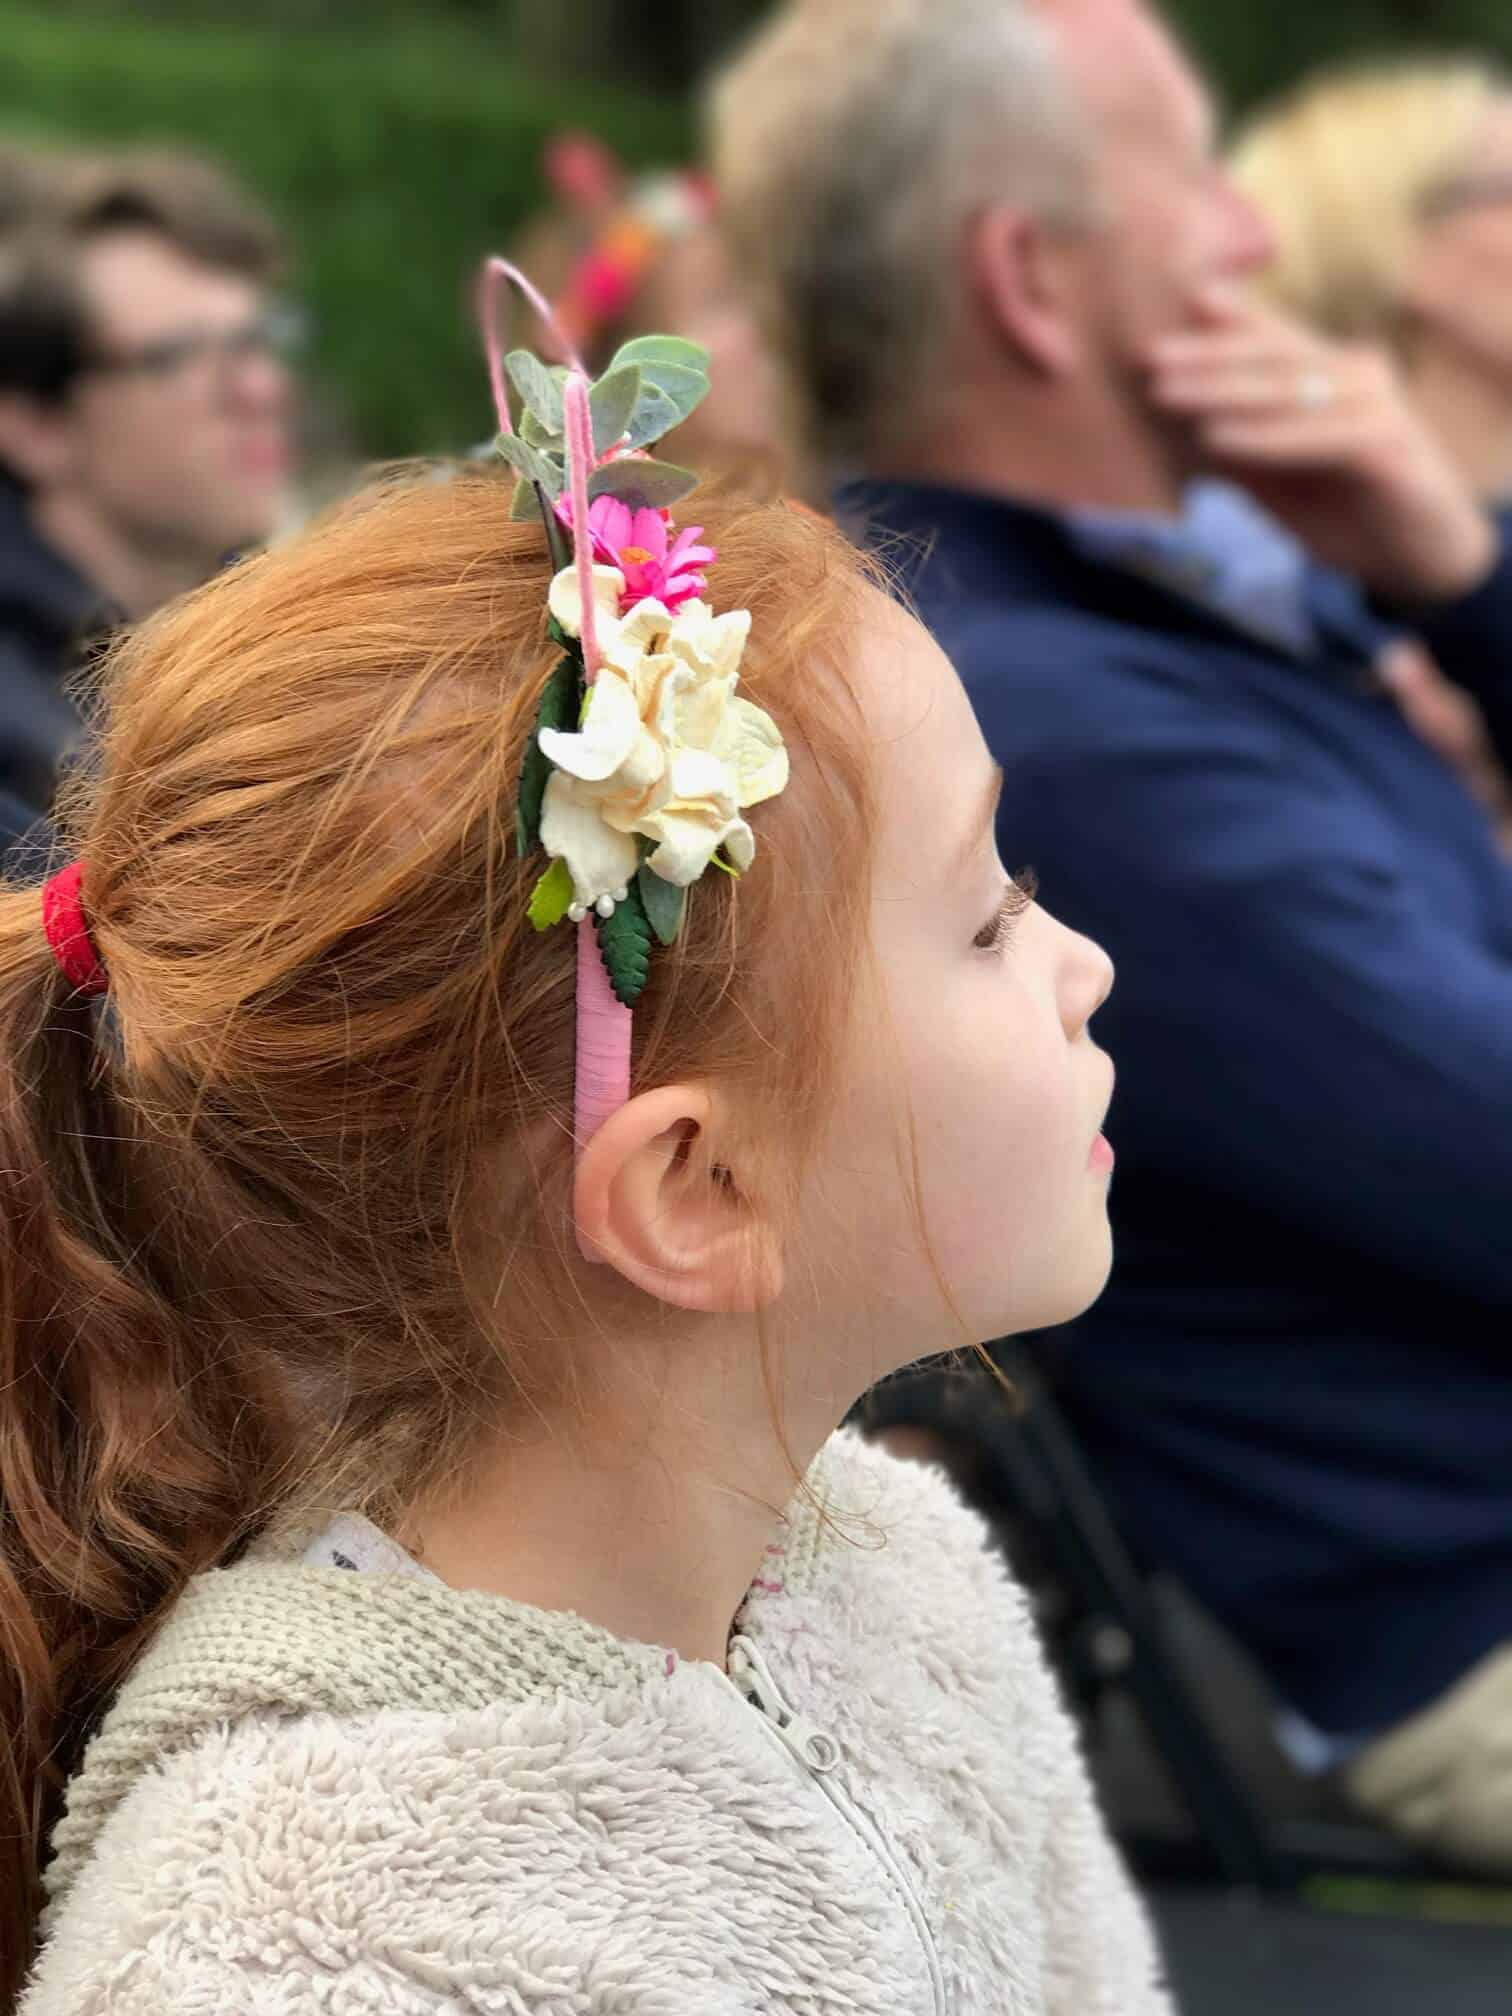 Ava in a flower headband